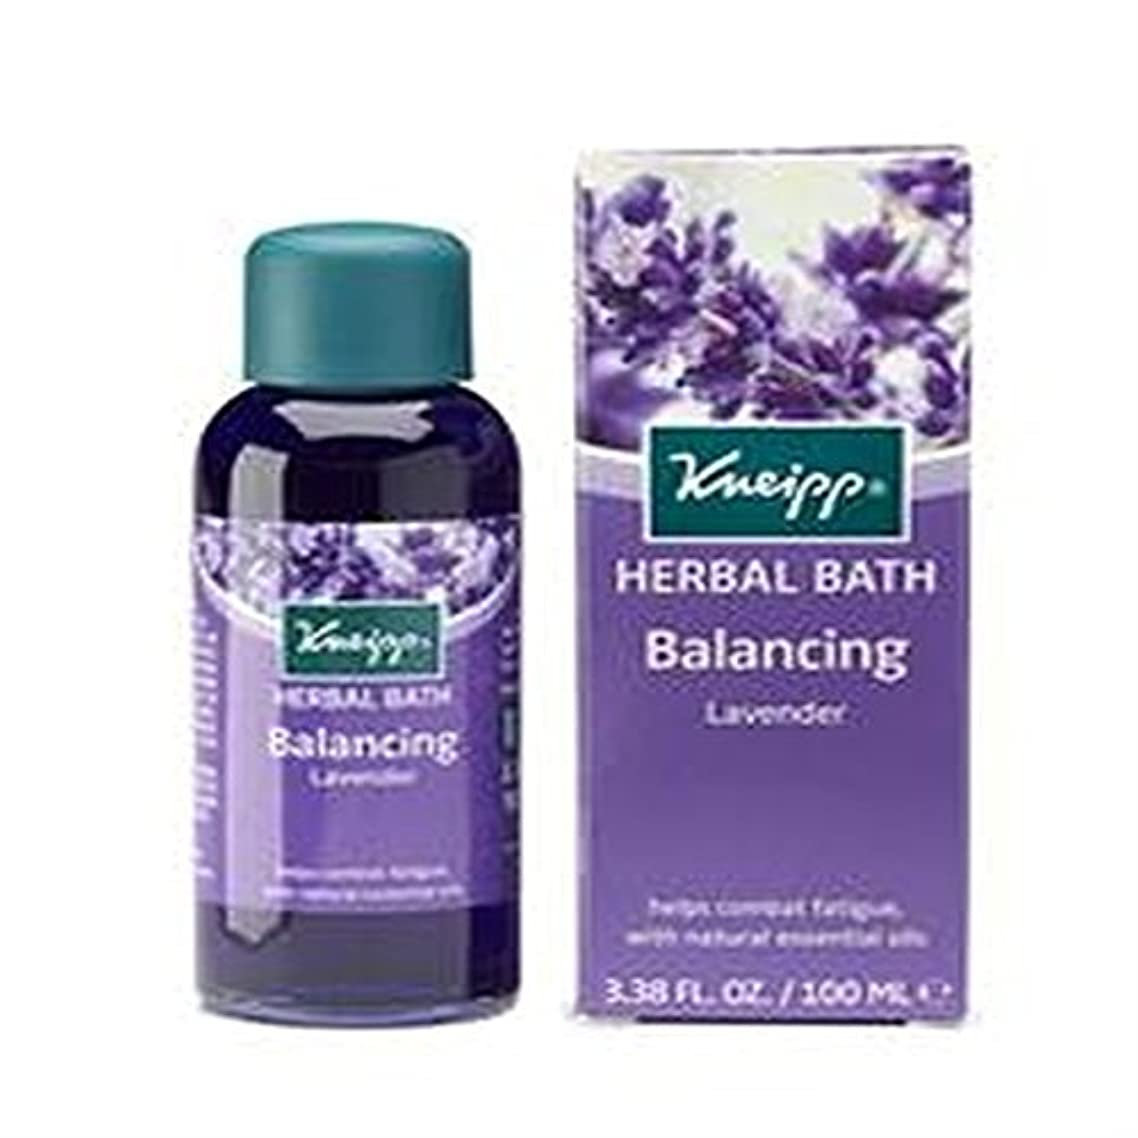 Kneipp Balancing Lavender Herbal Bath - 3.38 Oz. (並行輸入品) [並行輸入品]